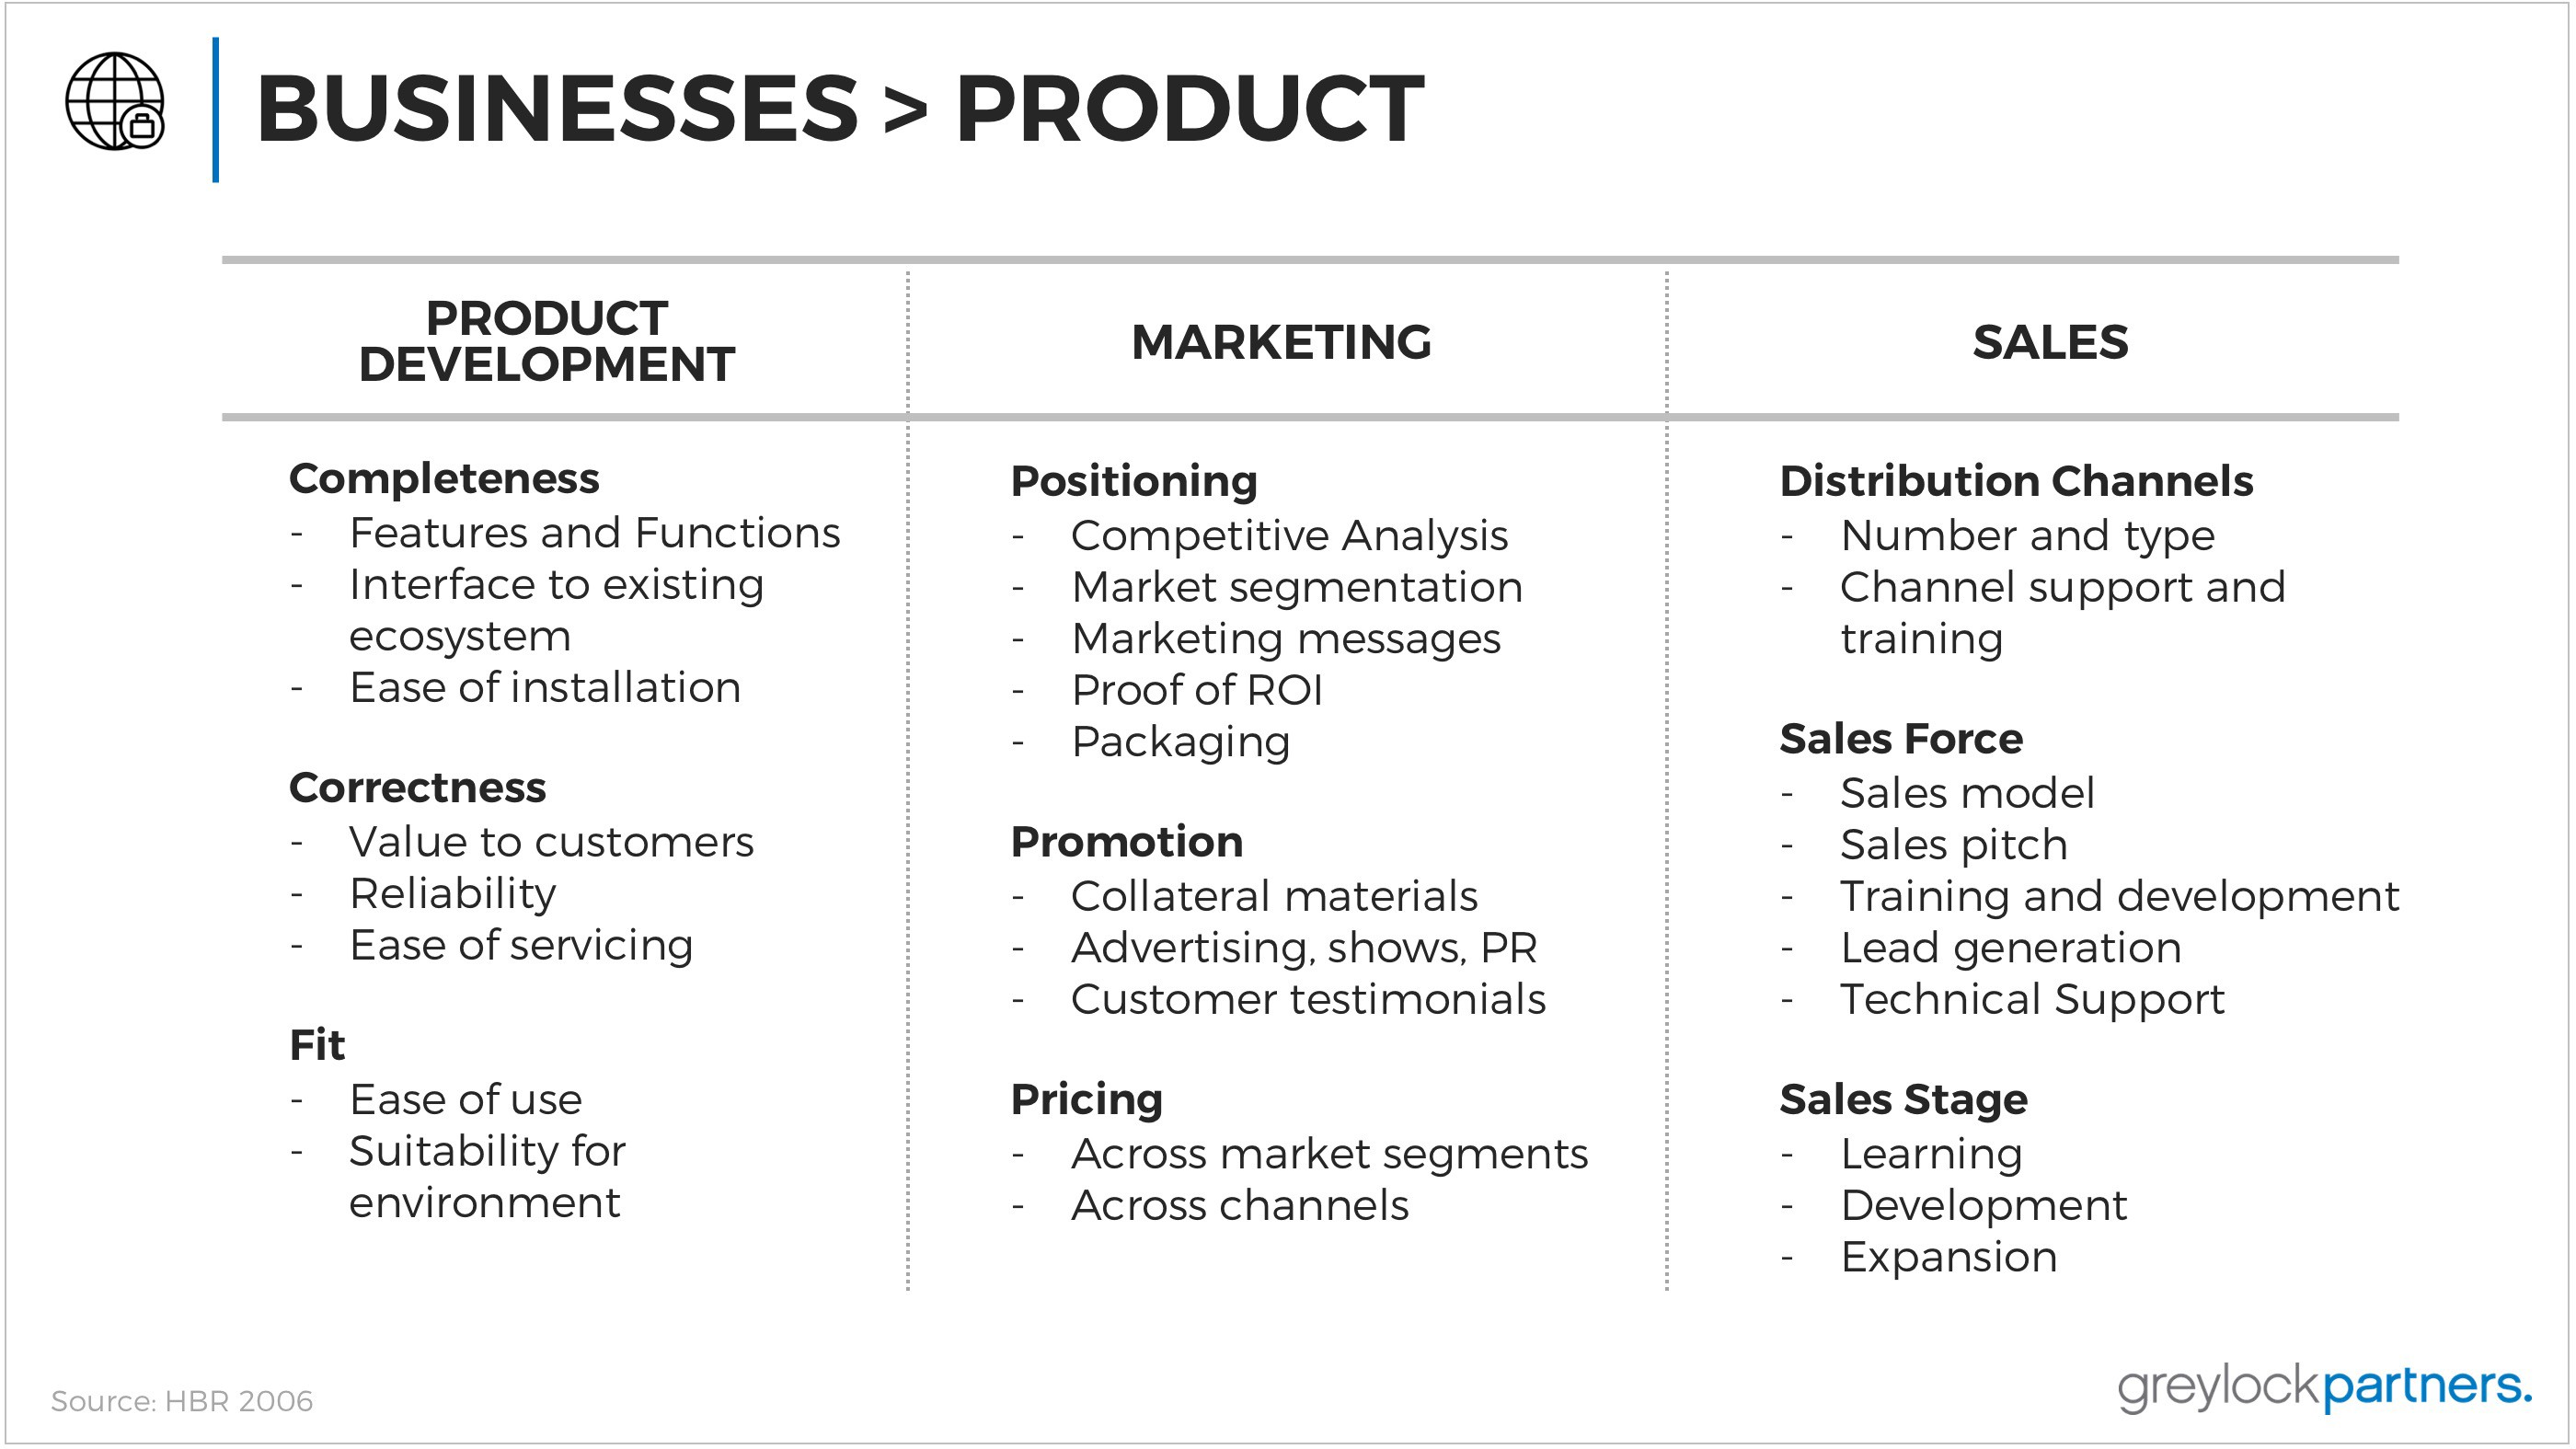 What do I look for in a pitch? - Greylock Perspectives